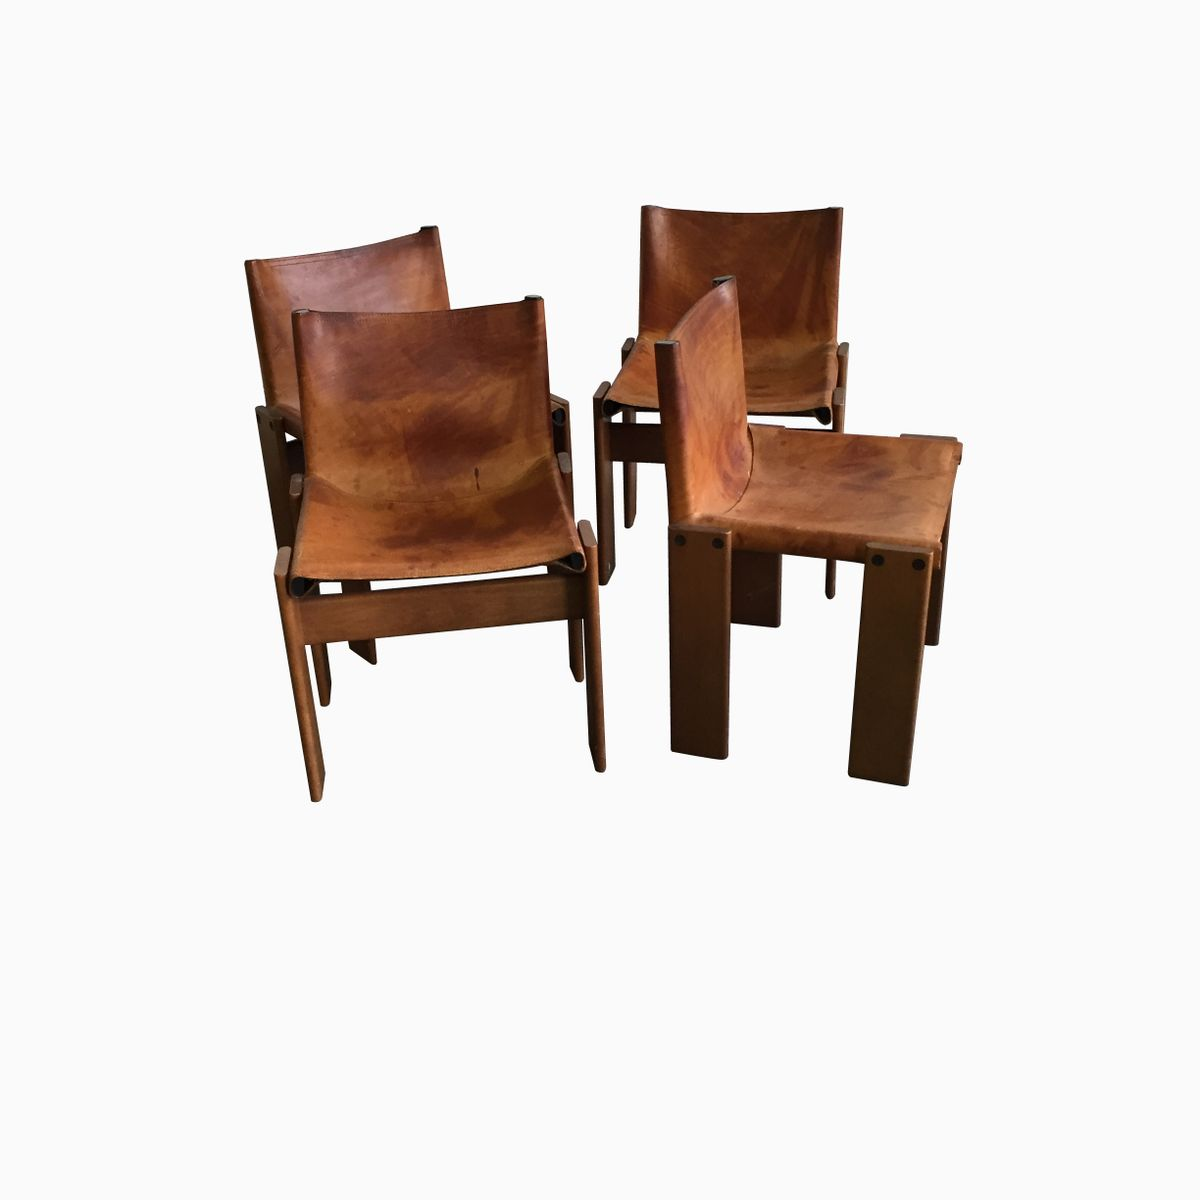 Superb img of Vintage Leather and Wood Chairs by Sedie Afra & Tobia Scarpa Set of 4  with #391D0E color and 1200x1200 pixels